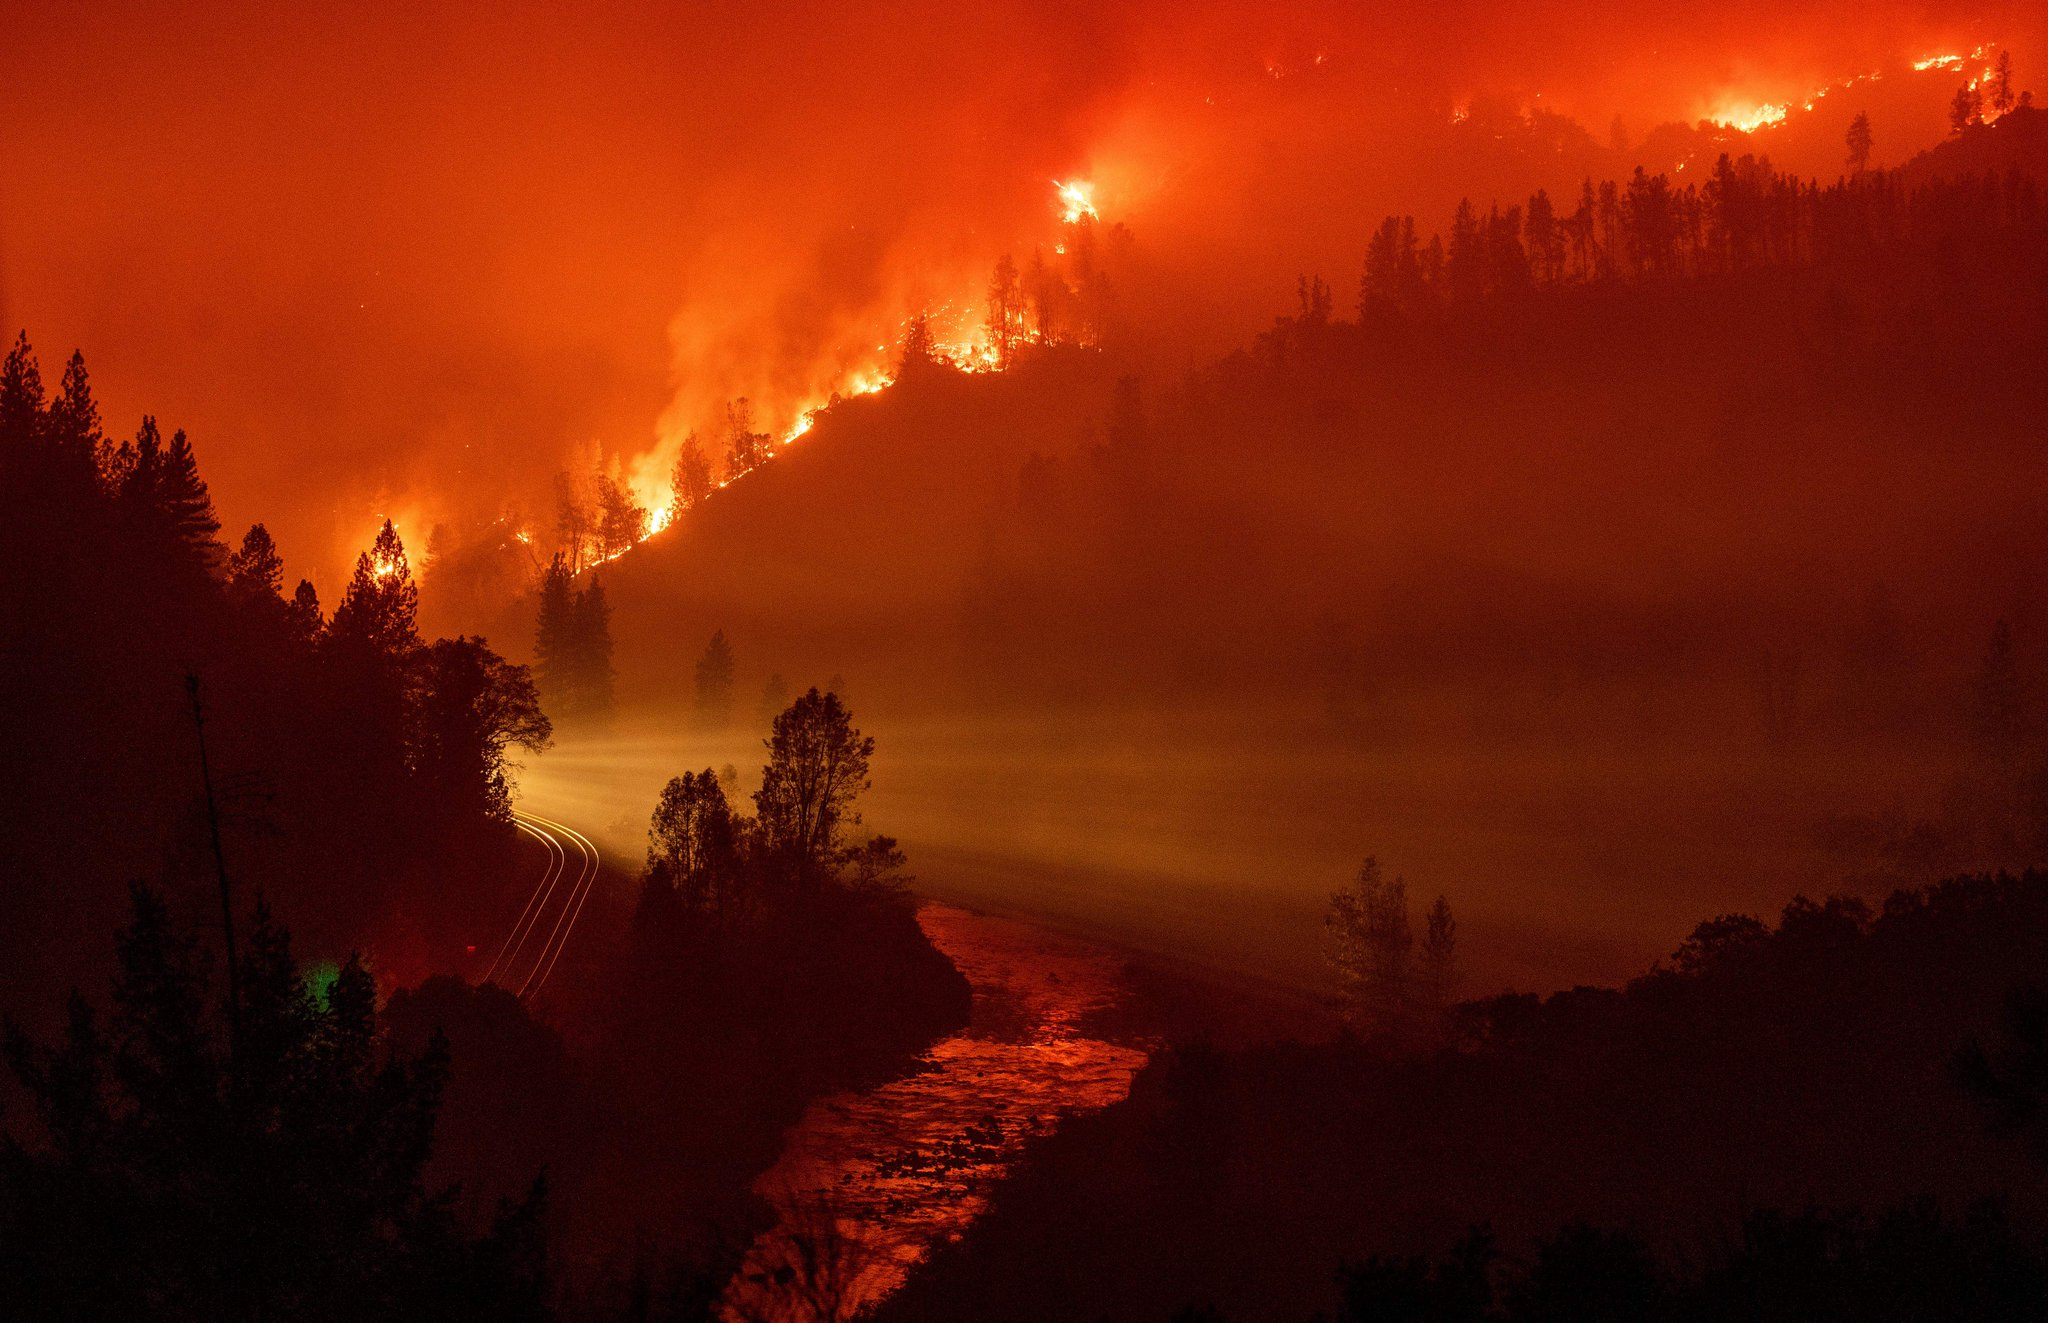 Firefighters continue to battle blazes across California https://t.co/JehGu7OqyK https://t.co/ZNfpB5okJR